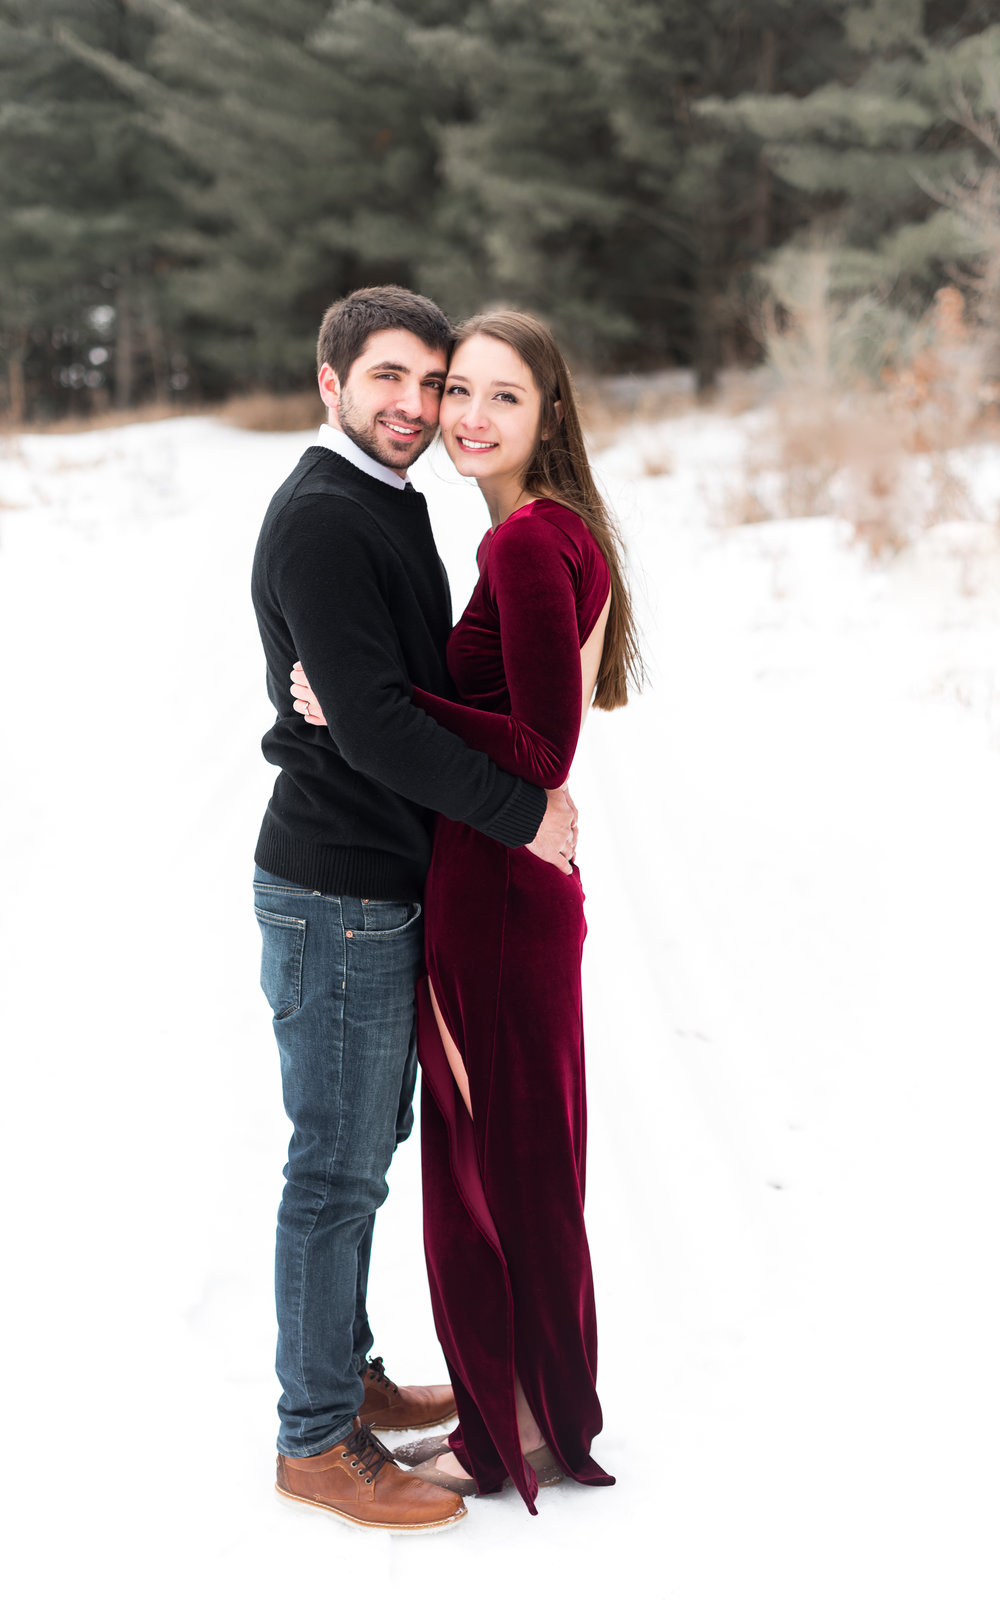 Mike + Amber  | Engagement Photos in Eagan, Mn